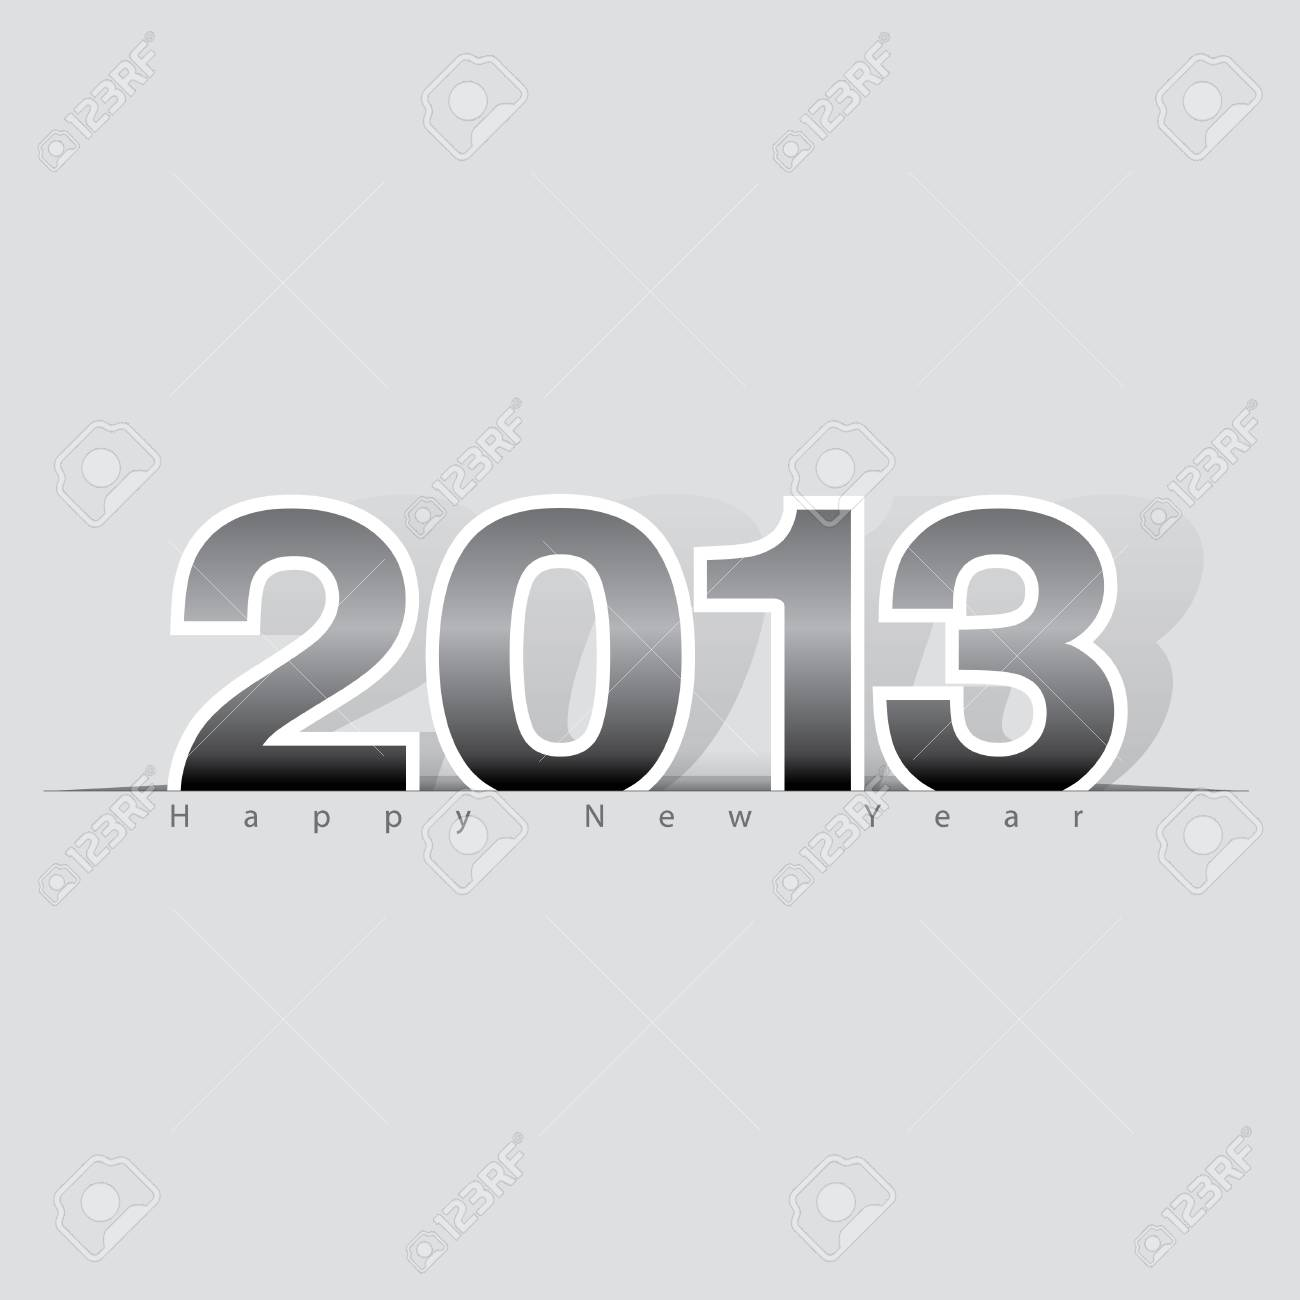 2013 Happy New Year design, background   illustration Stock Vector - 16753235